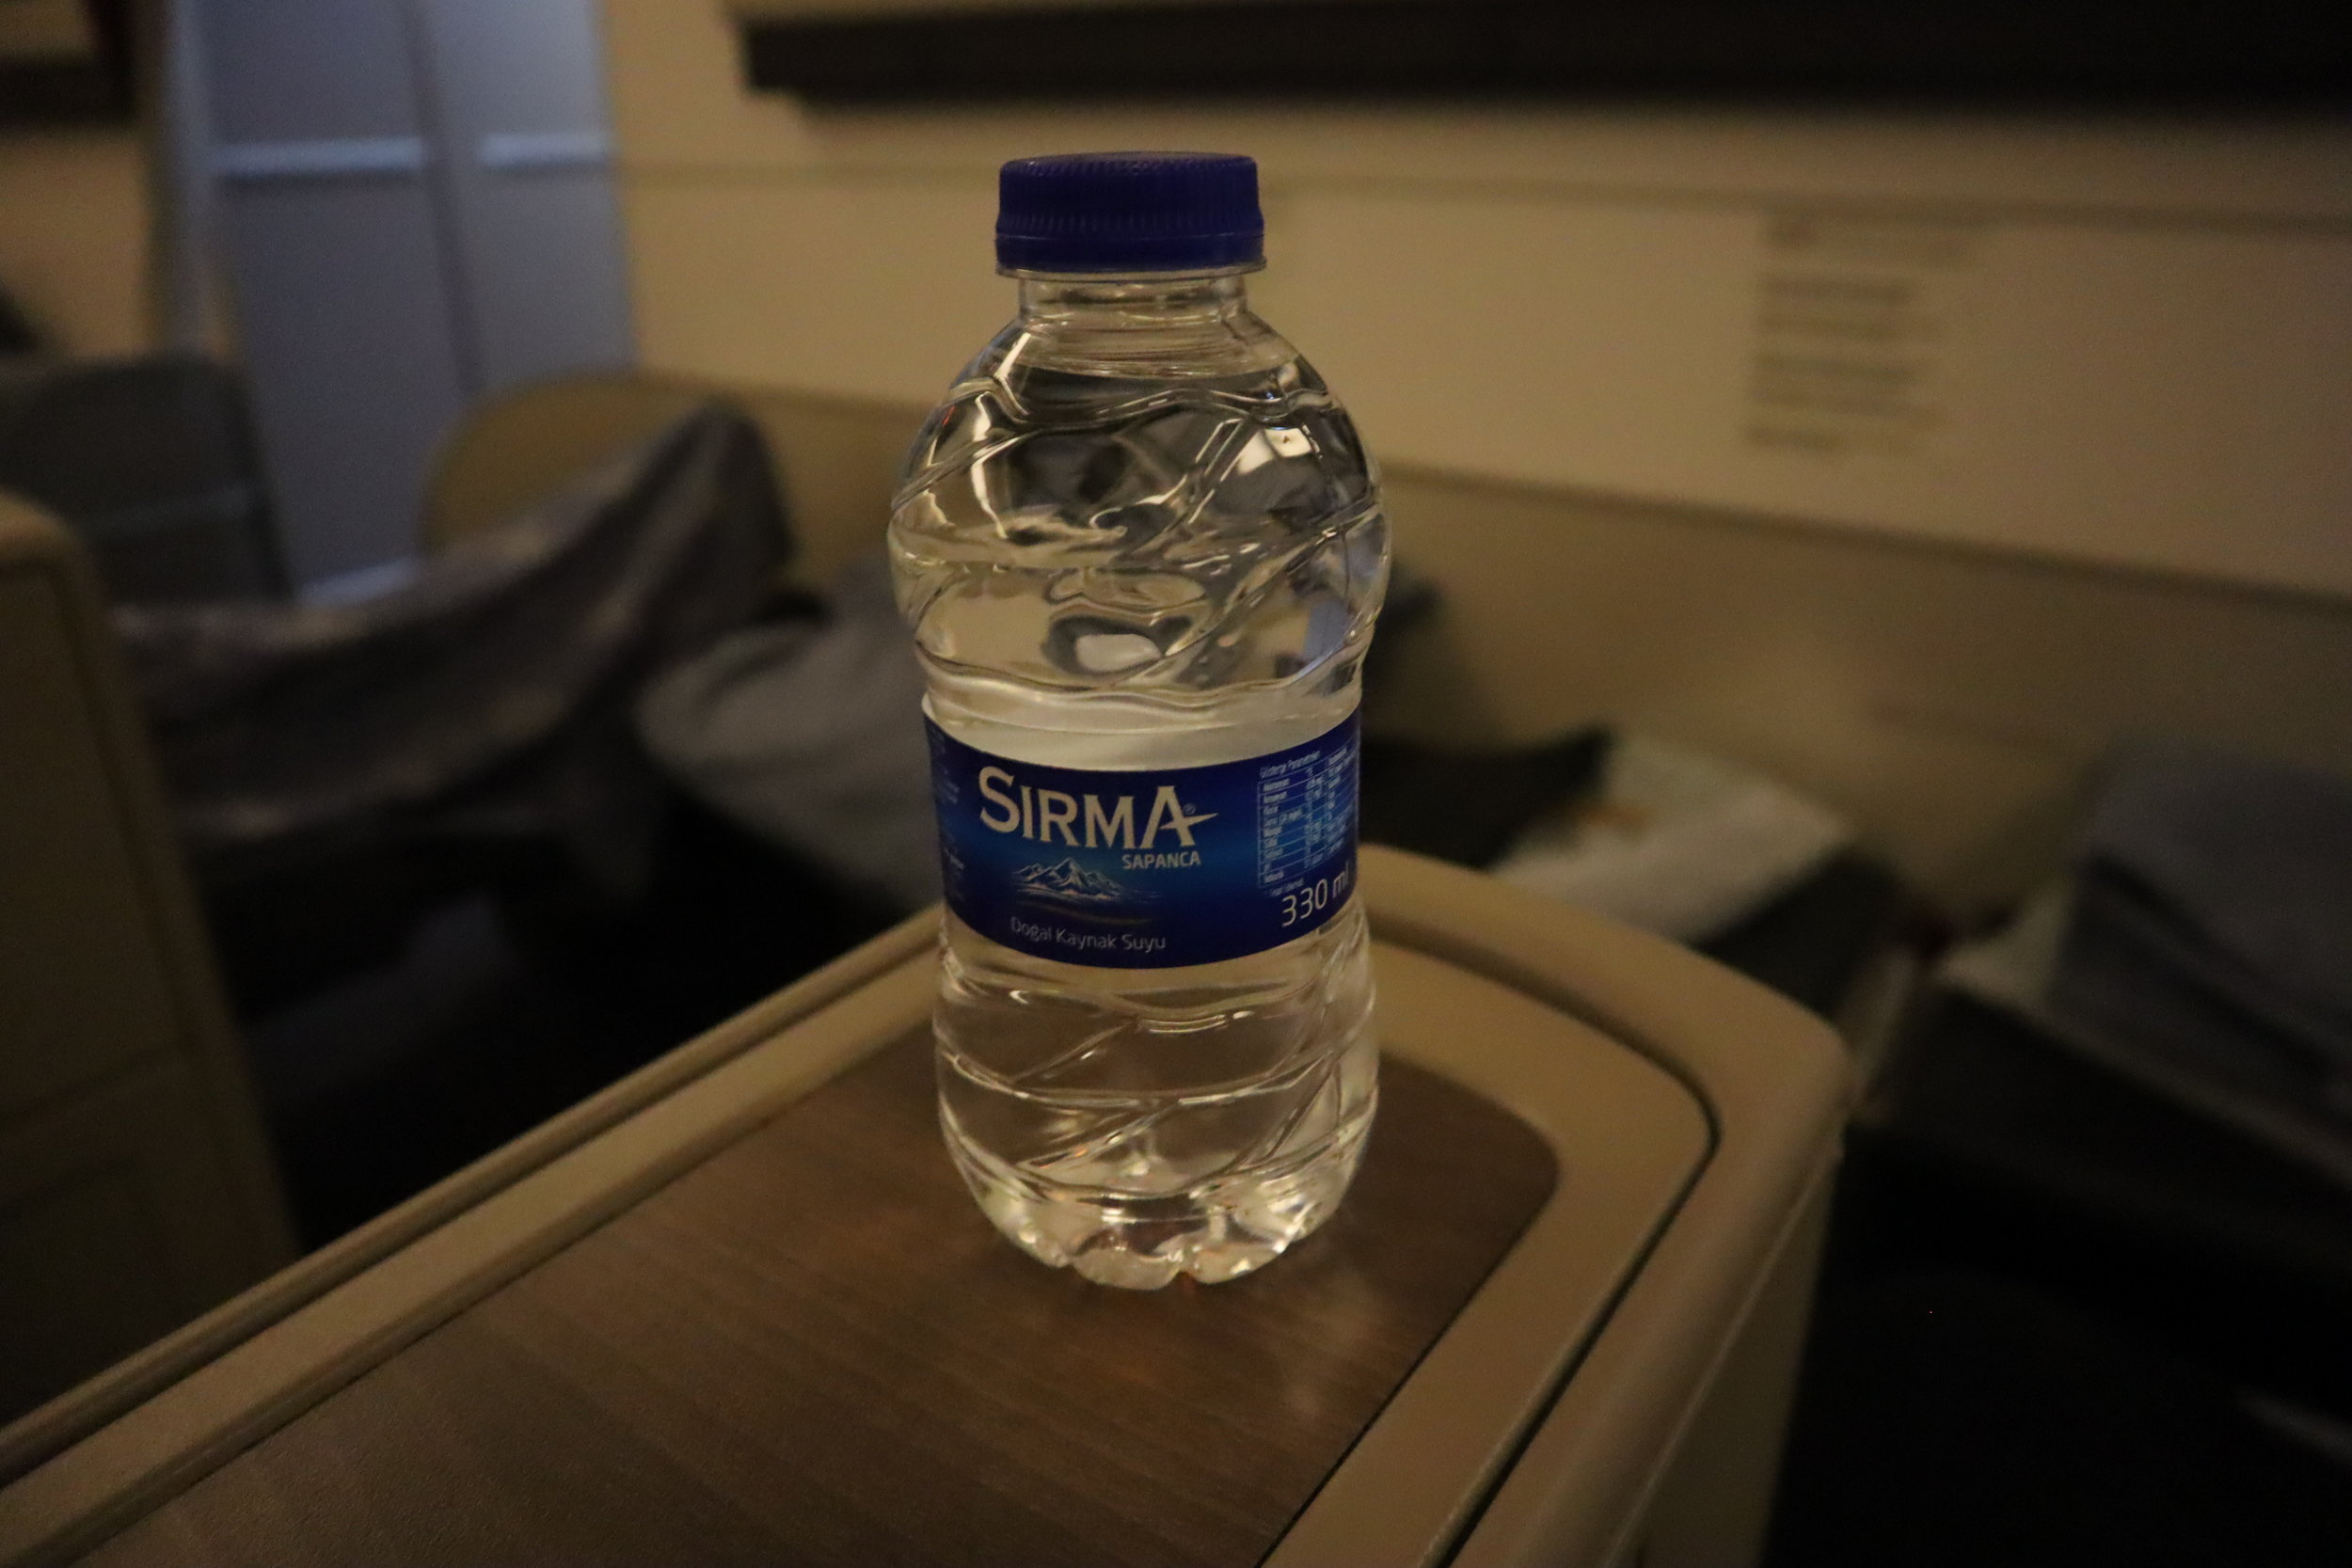 Turkish Airlines 777 business class – Bottled water